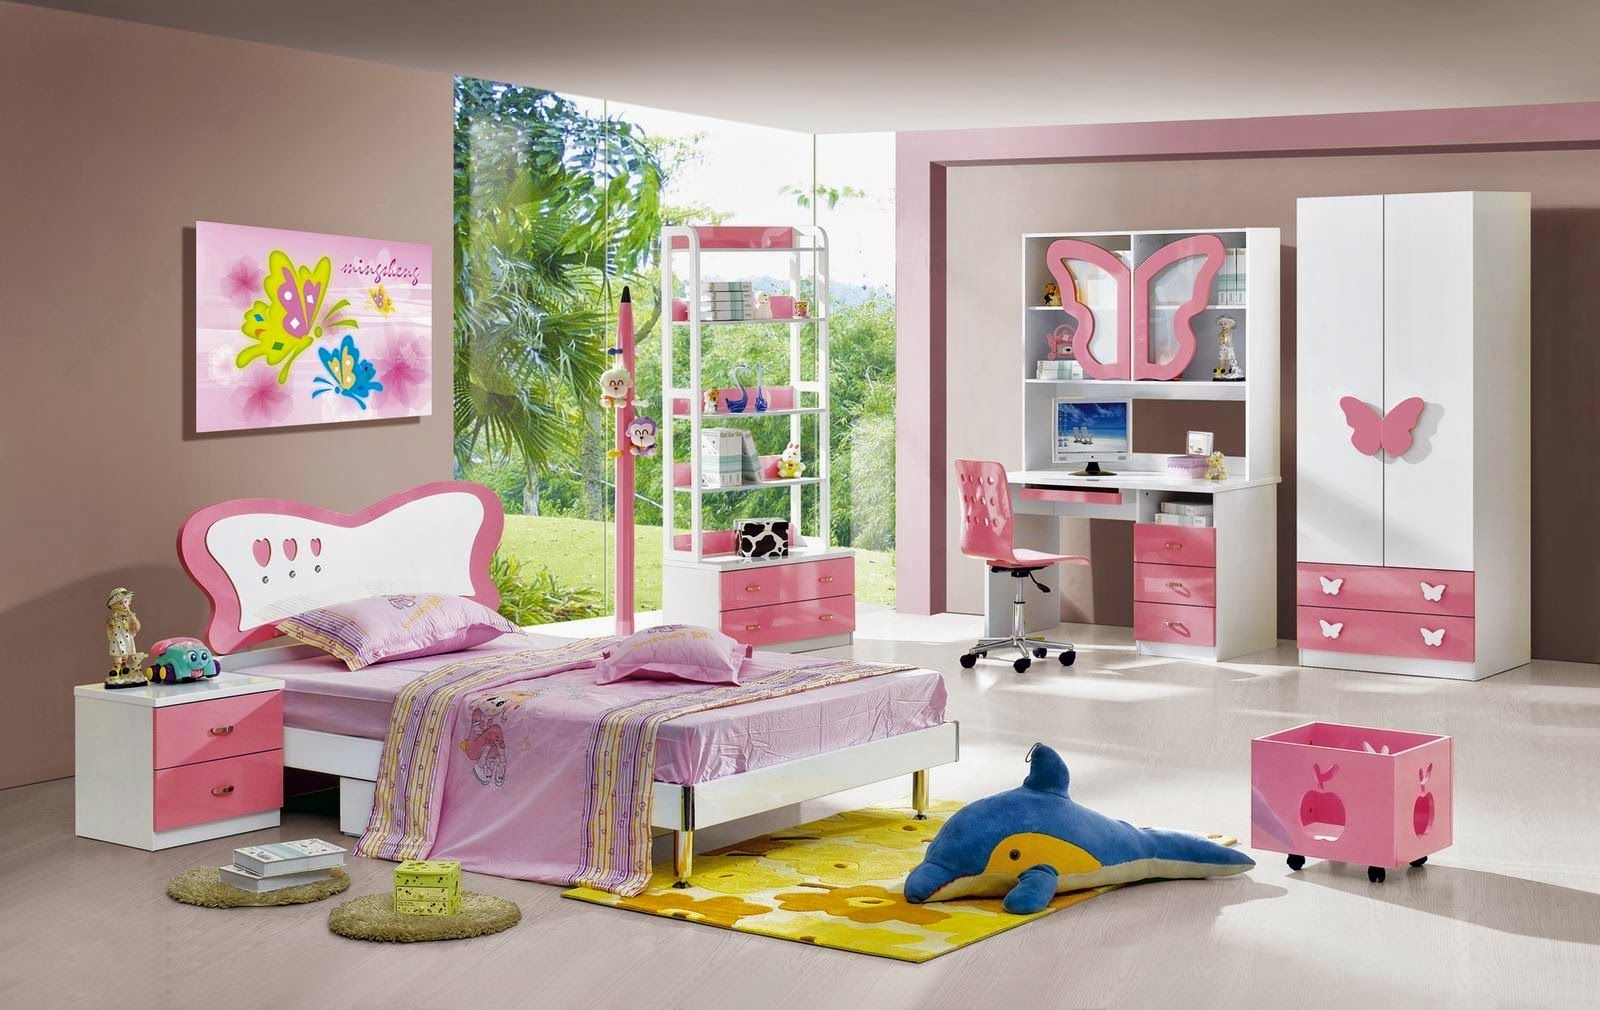 Children Room Design green and white rooms | cheerful kids room interior design with